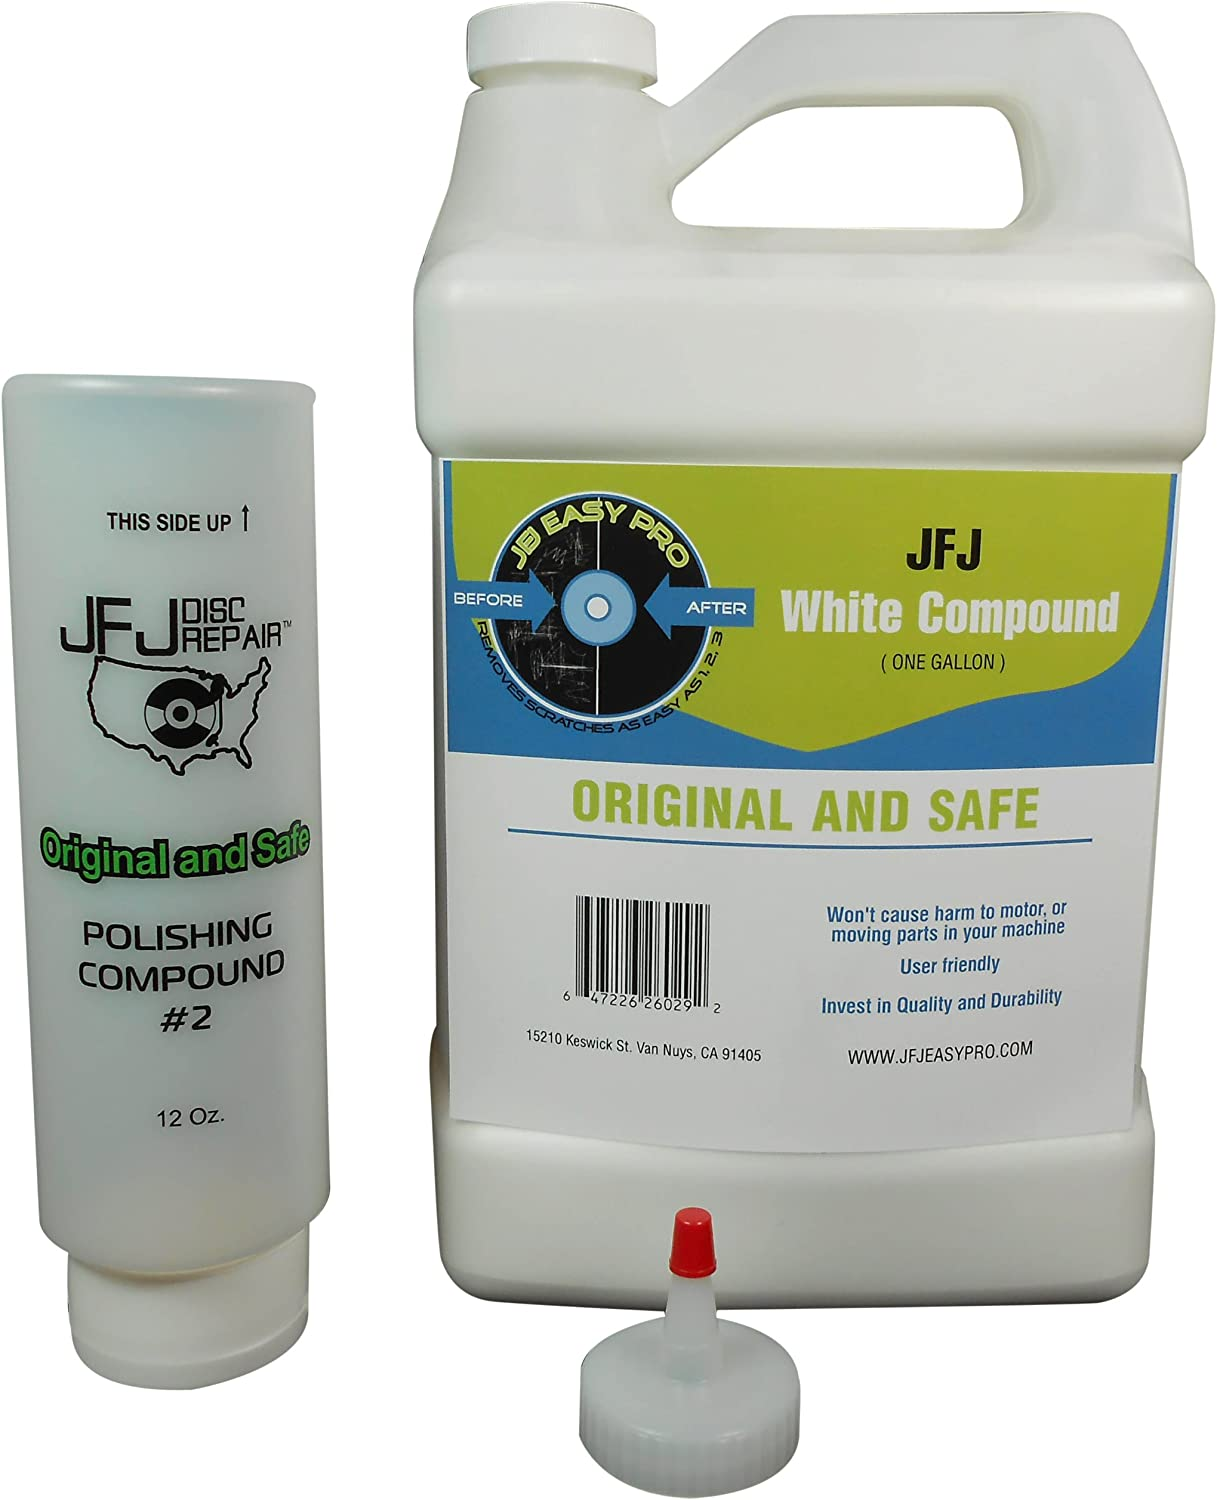 Original JFJ Combo Pack: 4 Easy Pro Buffing Pads and 1 JFJ Polish Compound #2 White 1 JFJ Polish Compound #1 Blue